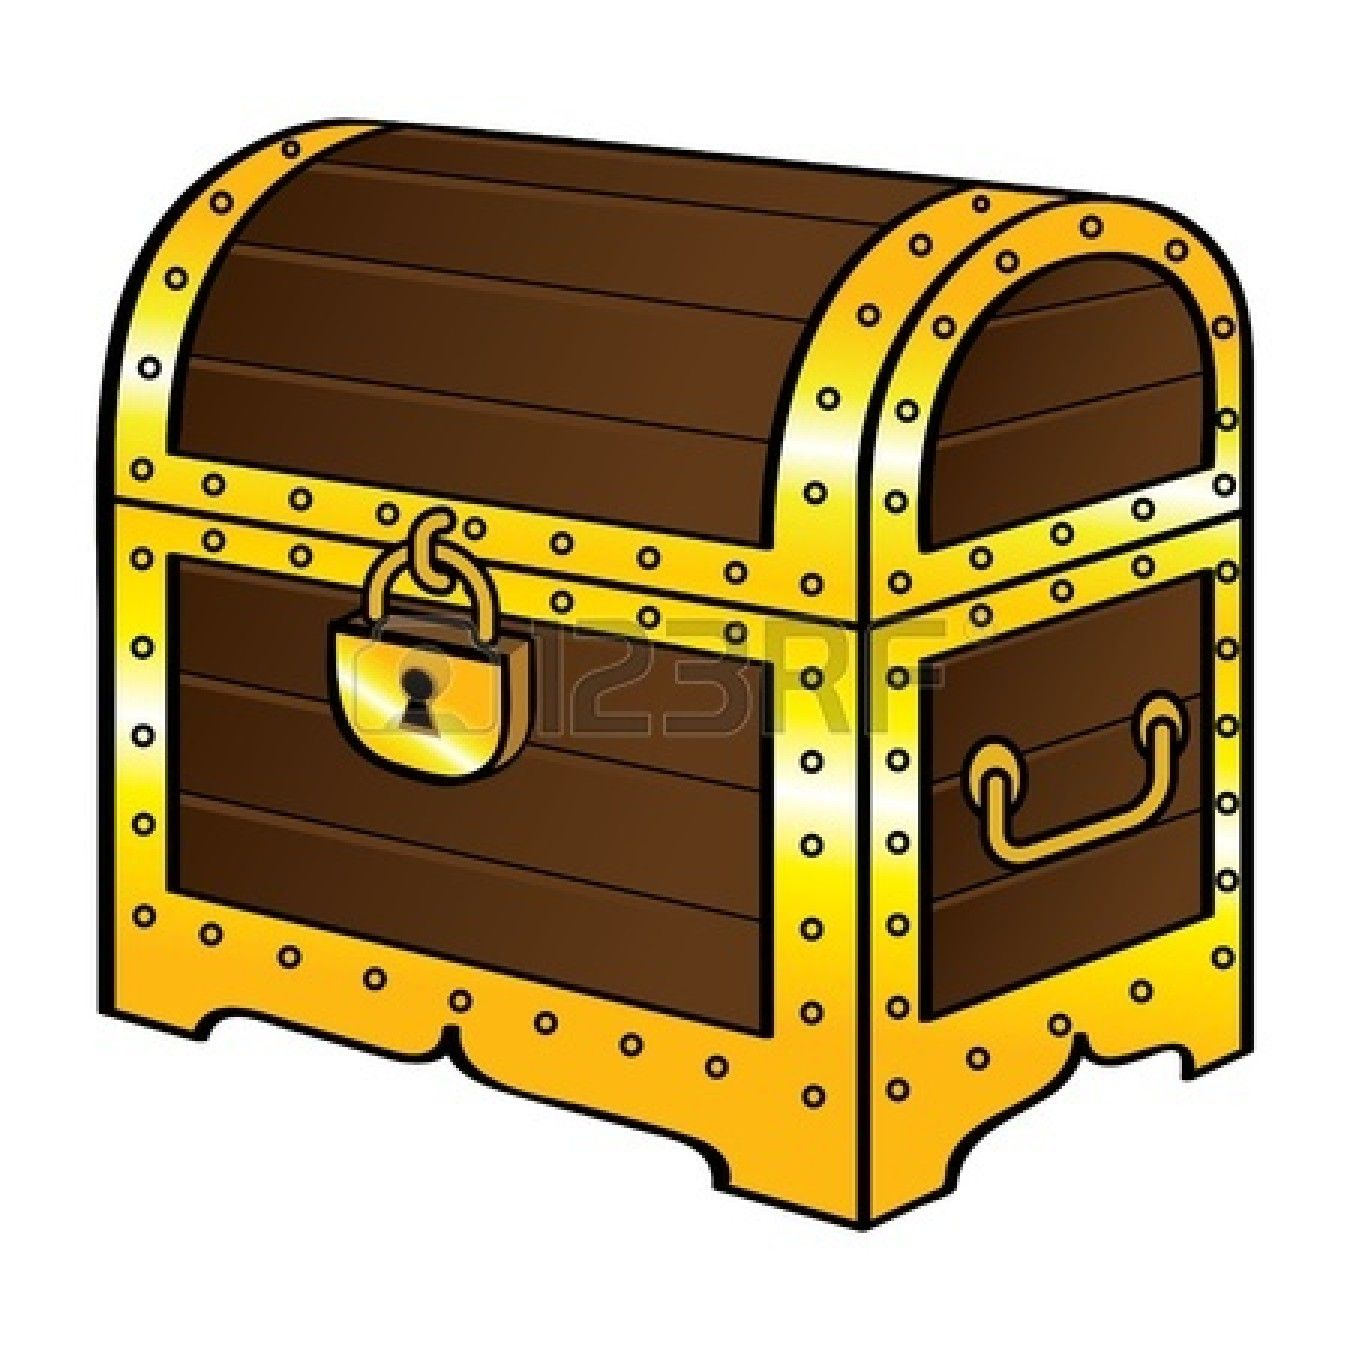 Treasure Chest Stock Vector Illustration And Royalty Free Treasure.